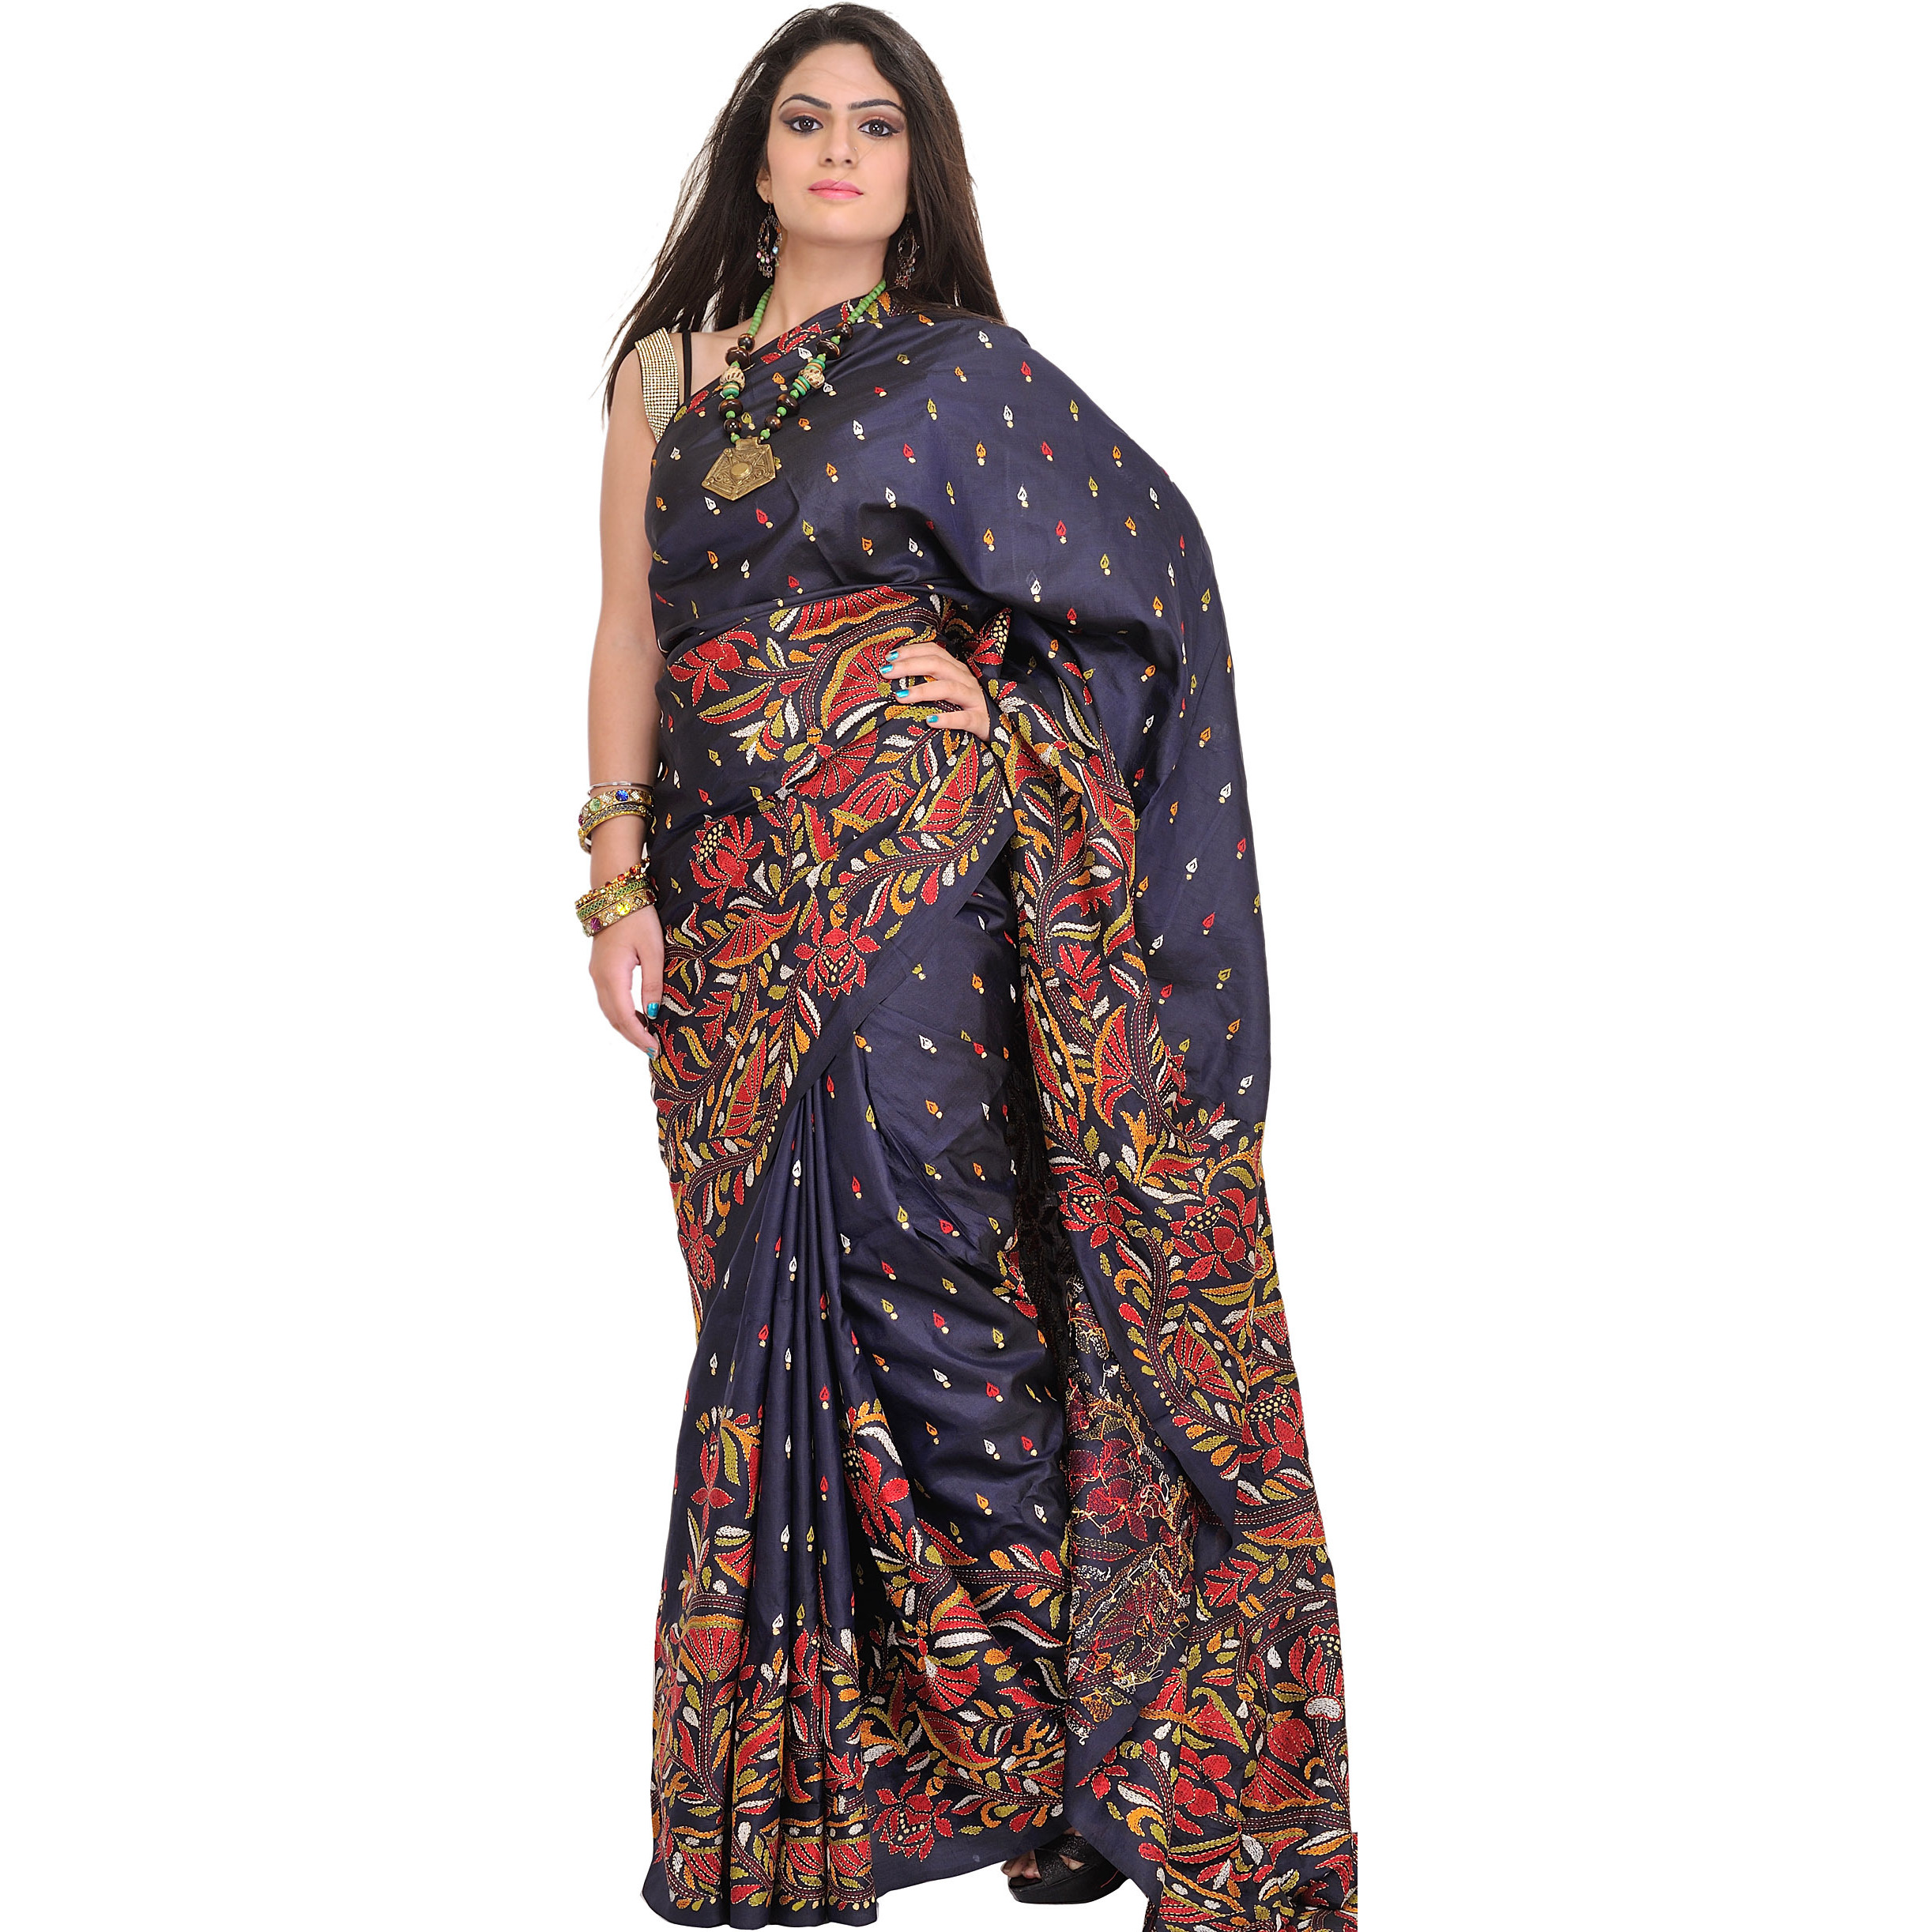 Nights-Blue Sari from Kolkata with Kantha Hand-Embroidered Lotuses